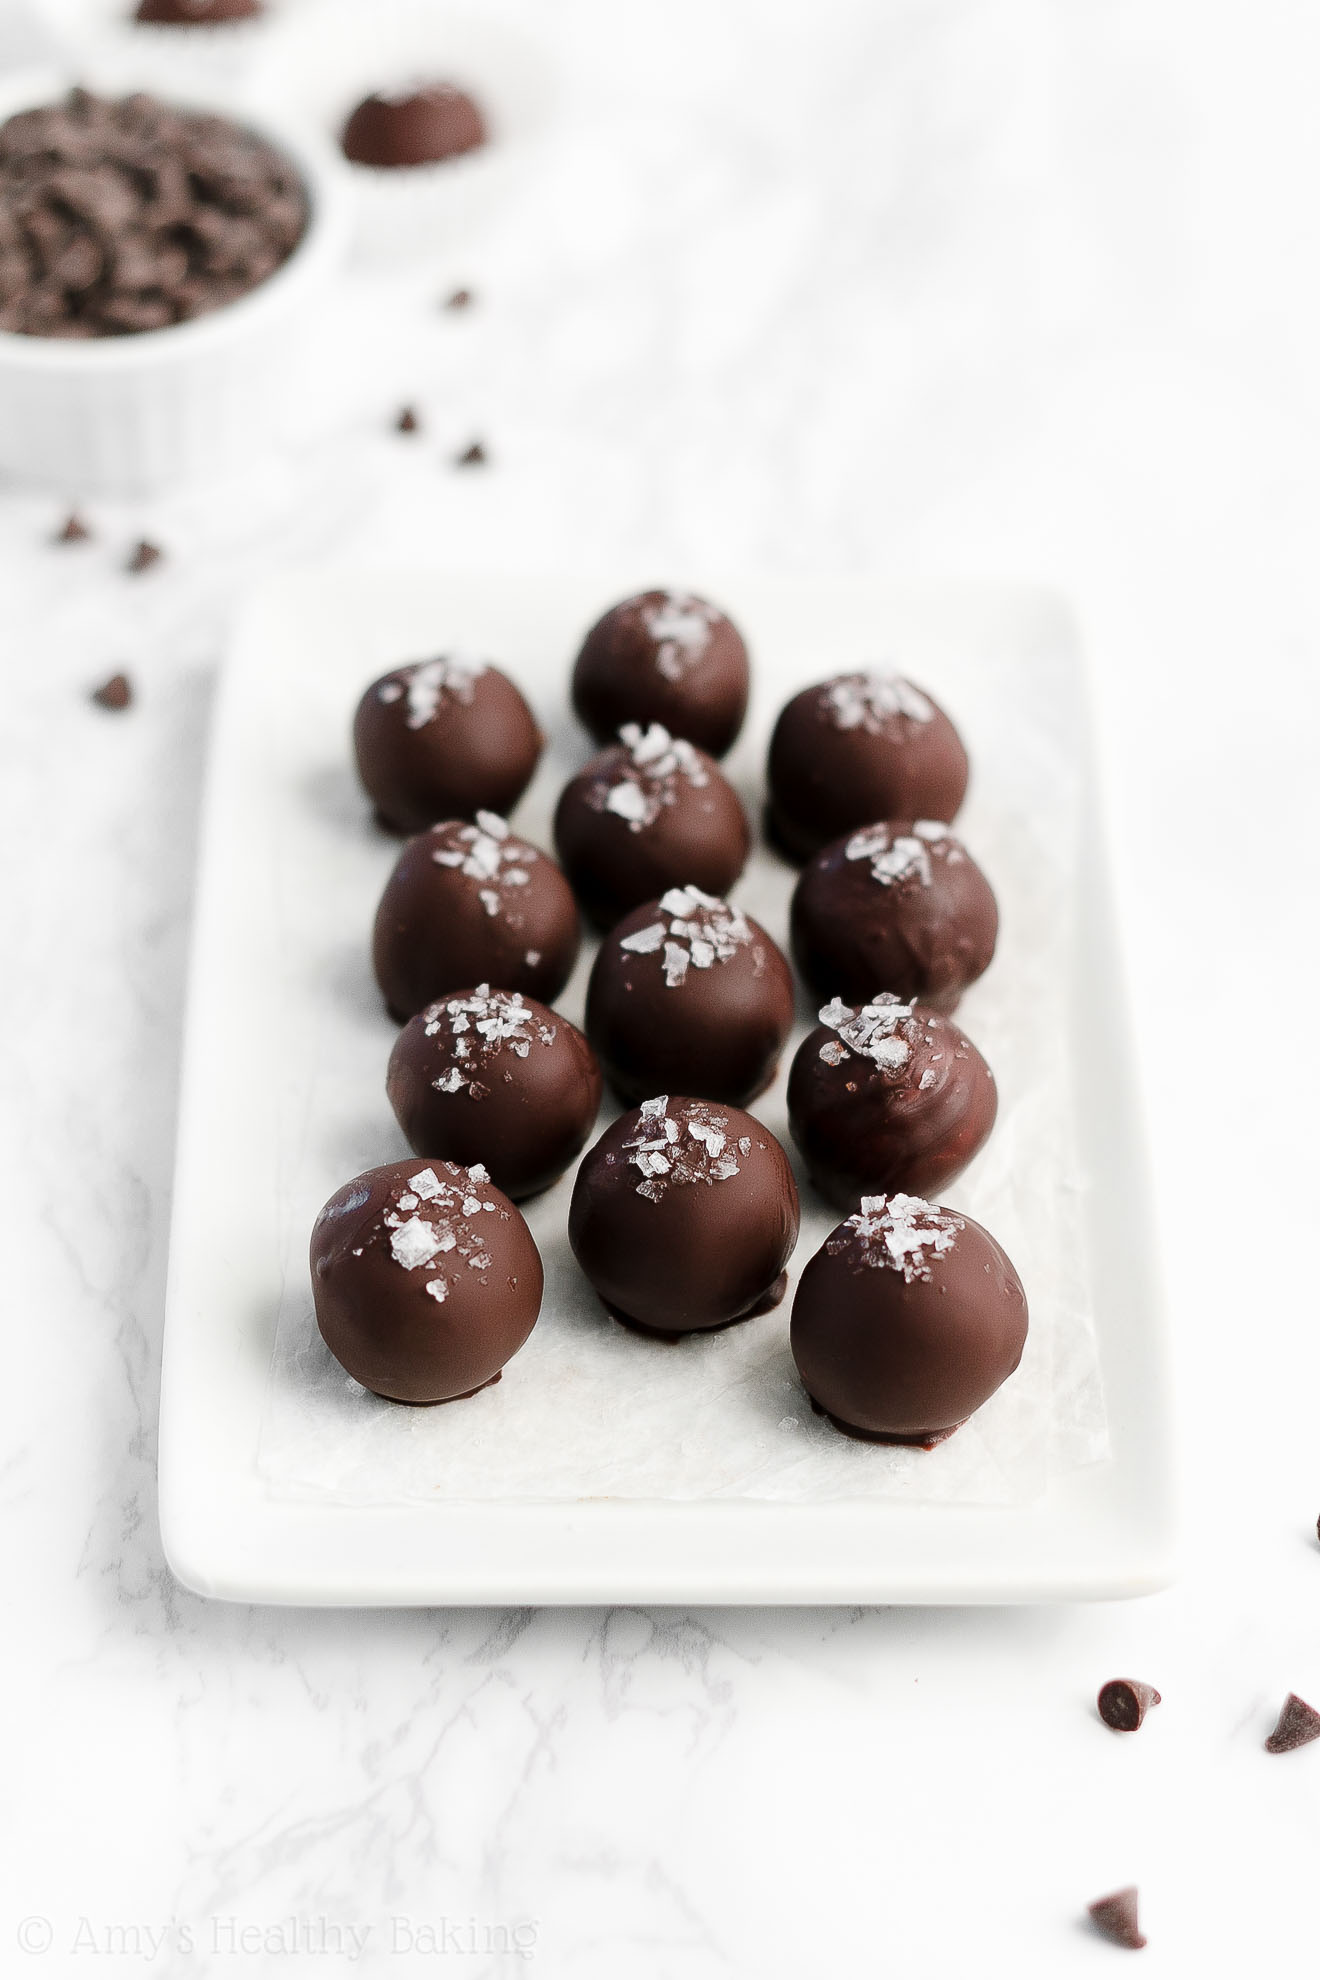 Easy Healthy Gluten Free No Bake Edible Chocolate Chip Cookie Dough Truffles